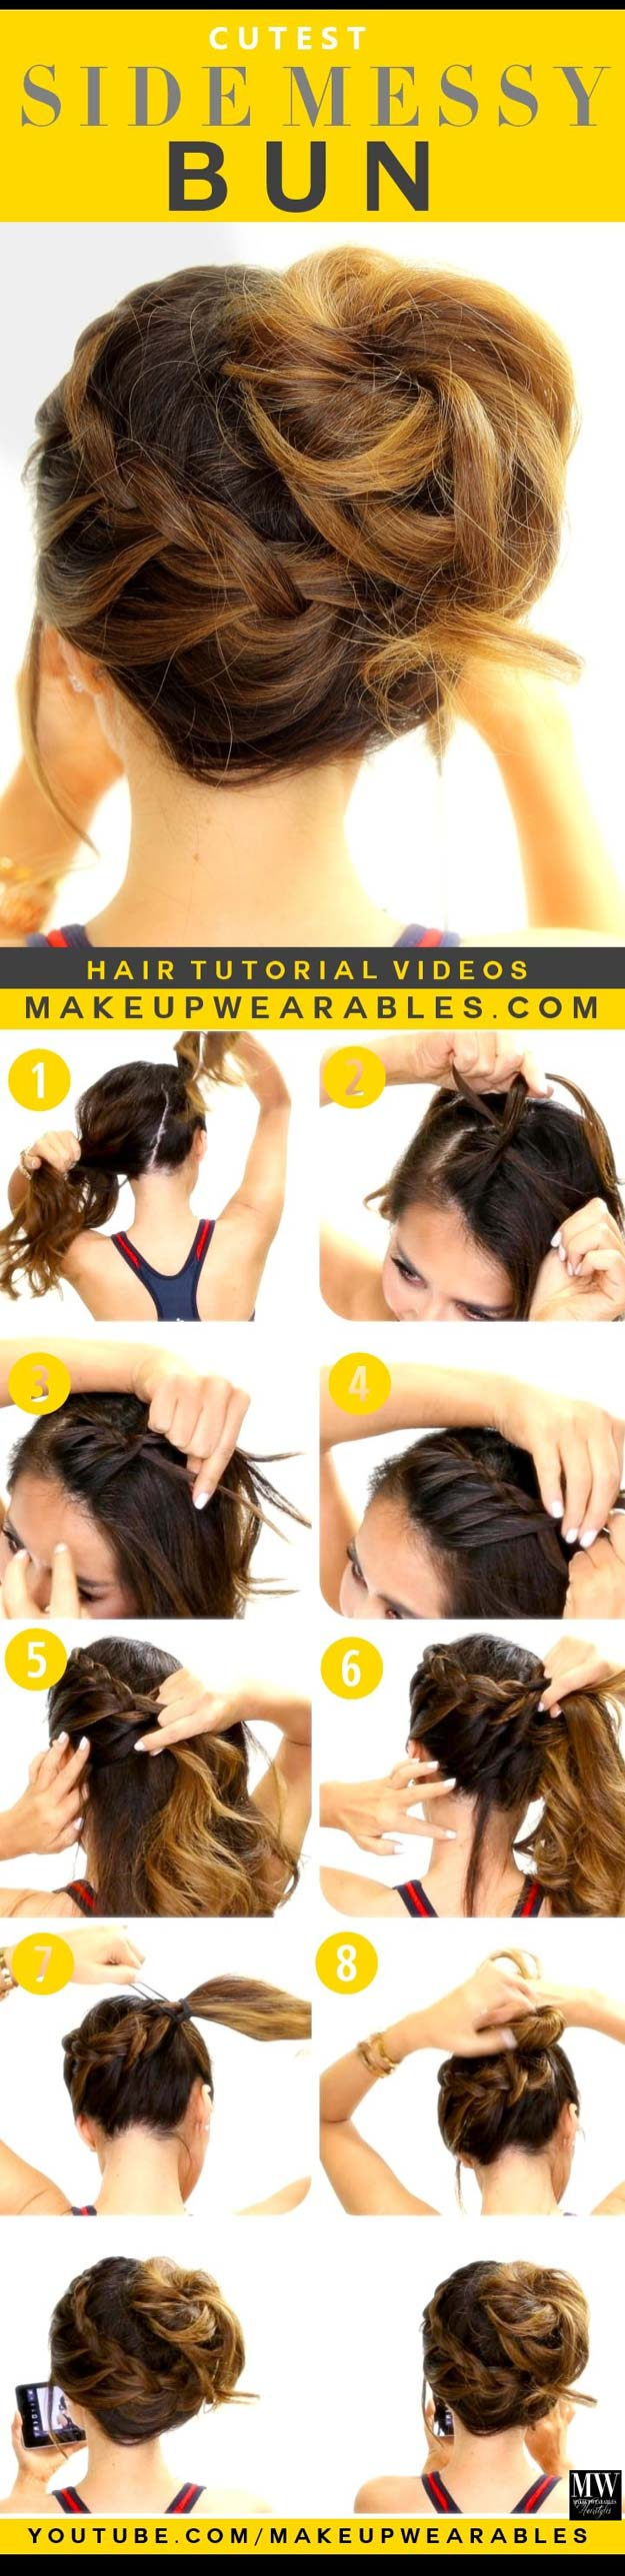 40 Of The Best Cute Hair Braiding Tutorials Diy Projects For Teens